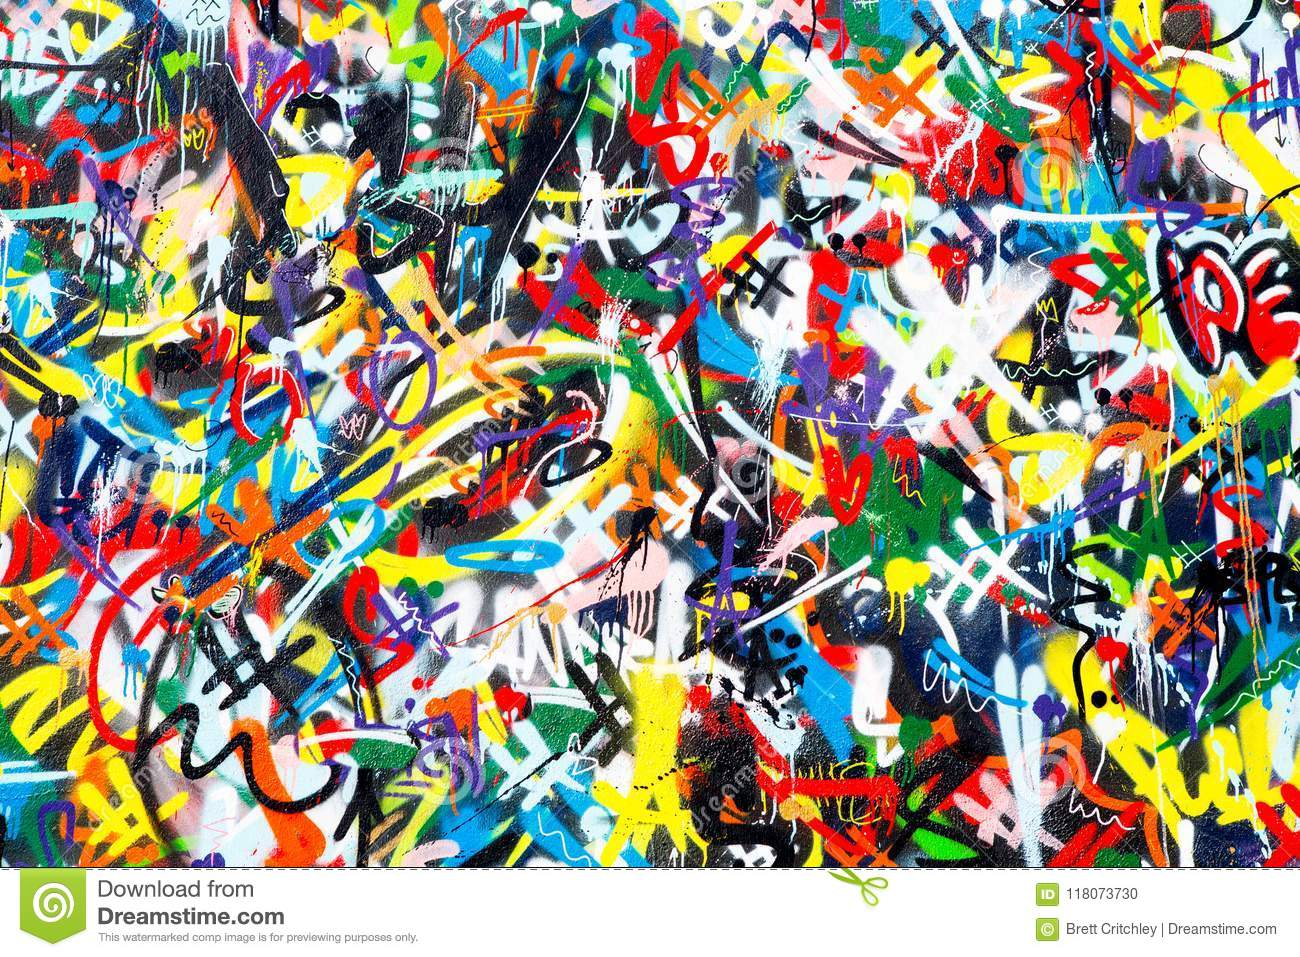 Abstract colorful graffiti wall background